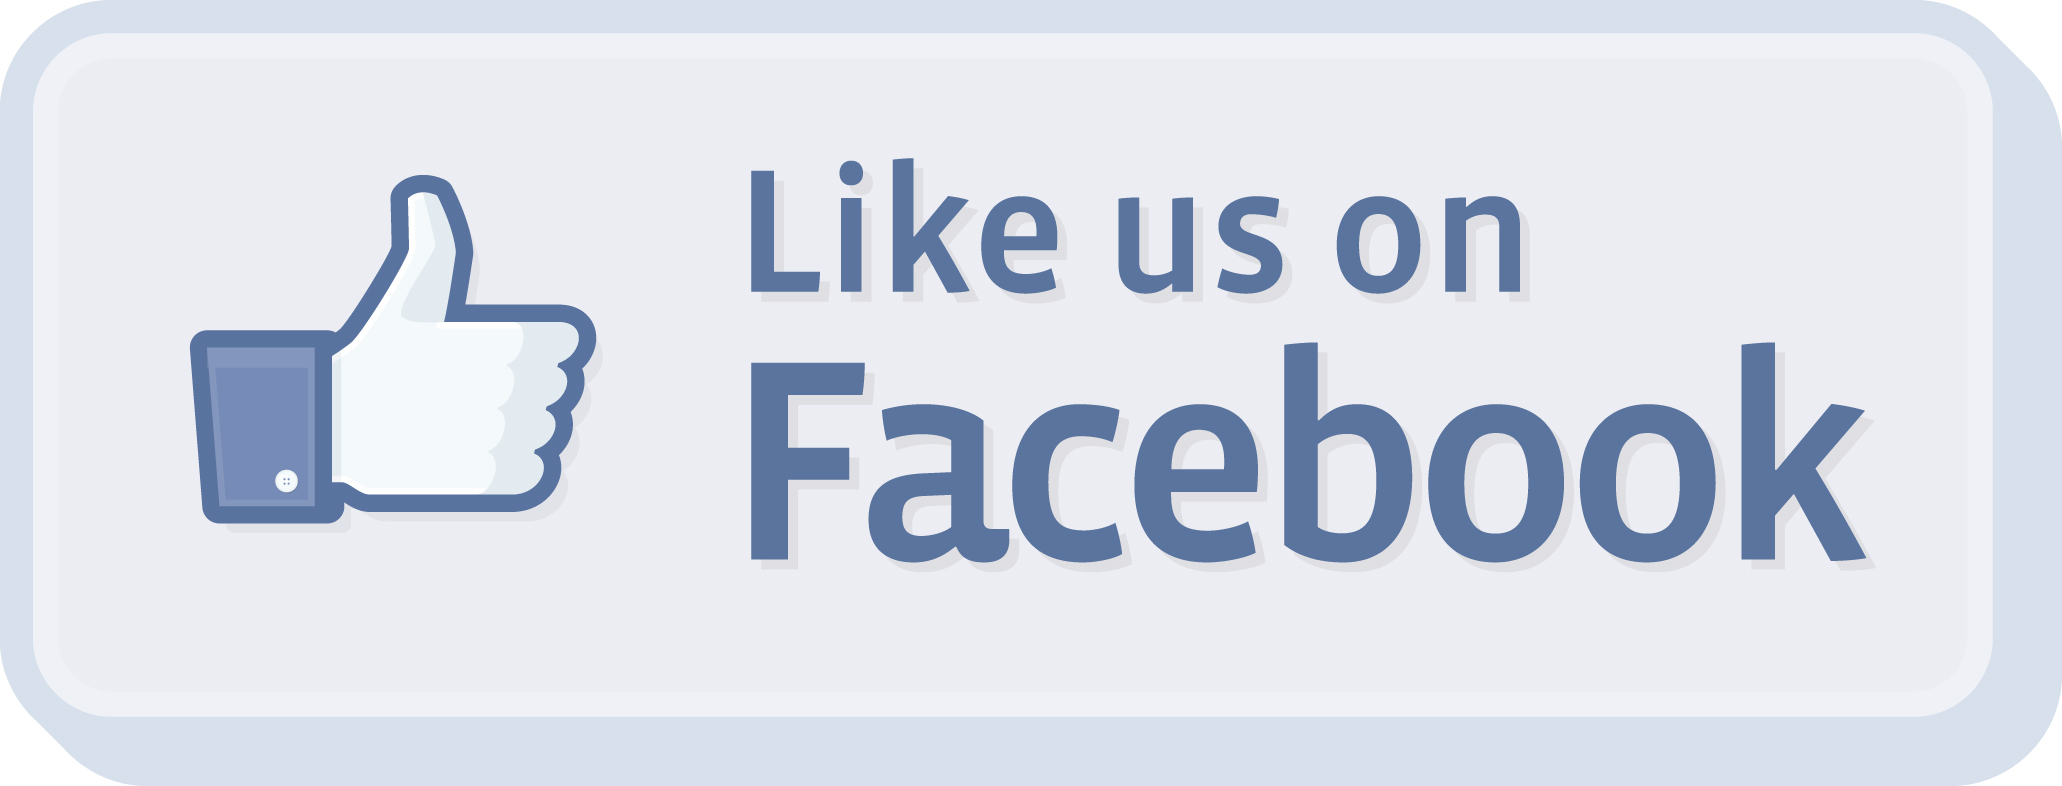 10 reasons you should like us on facebook